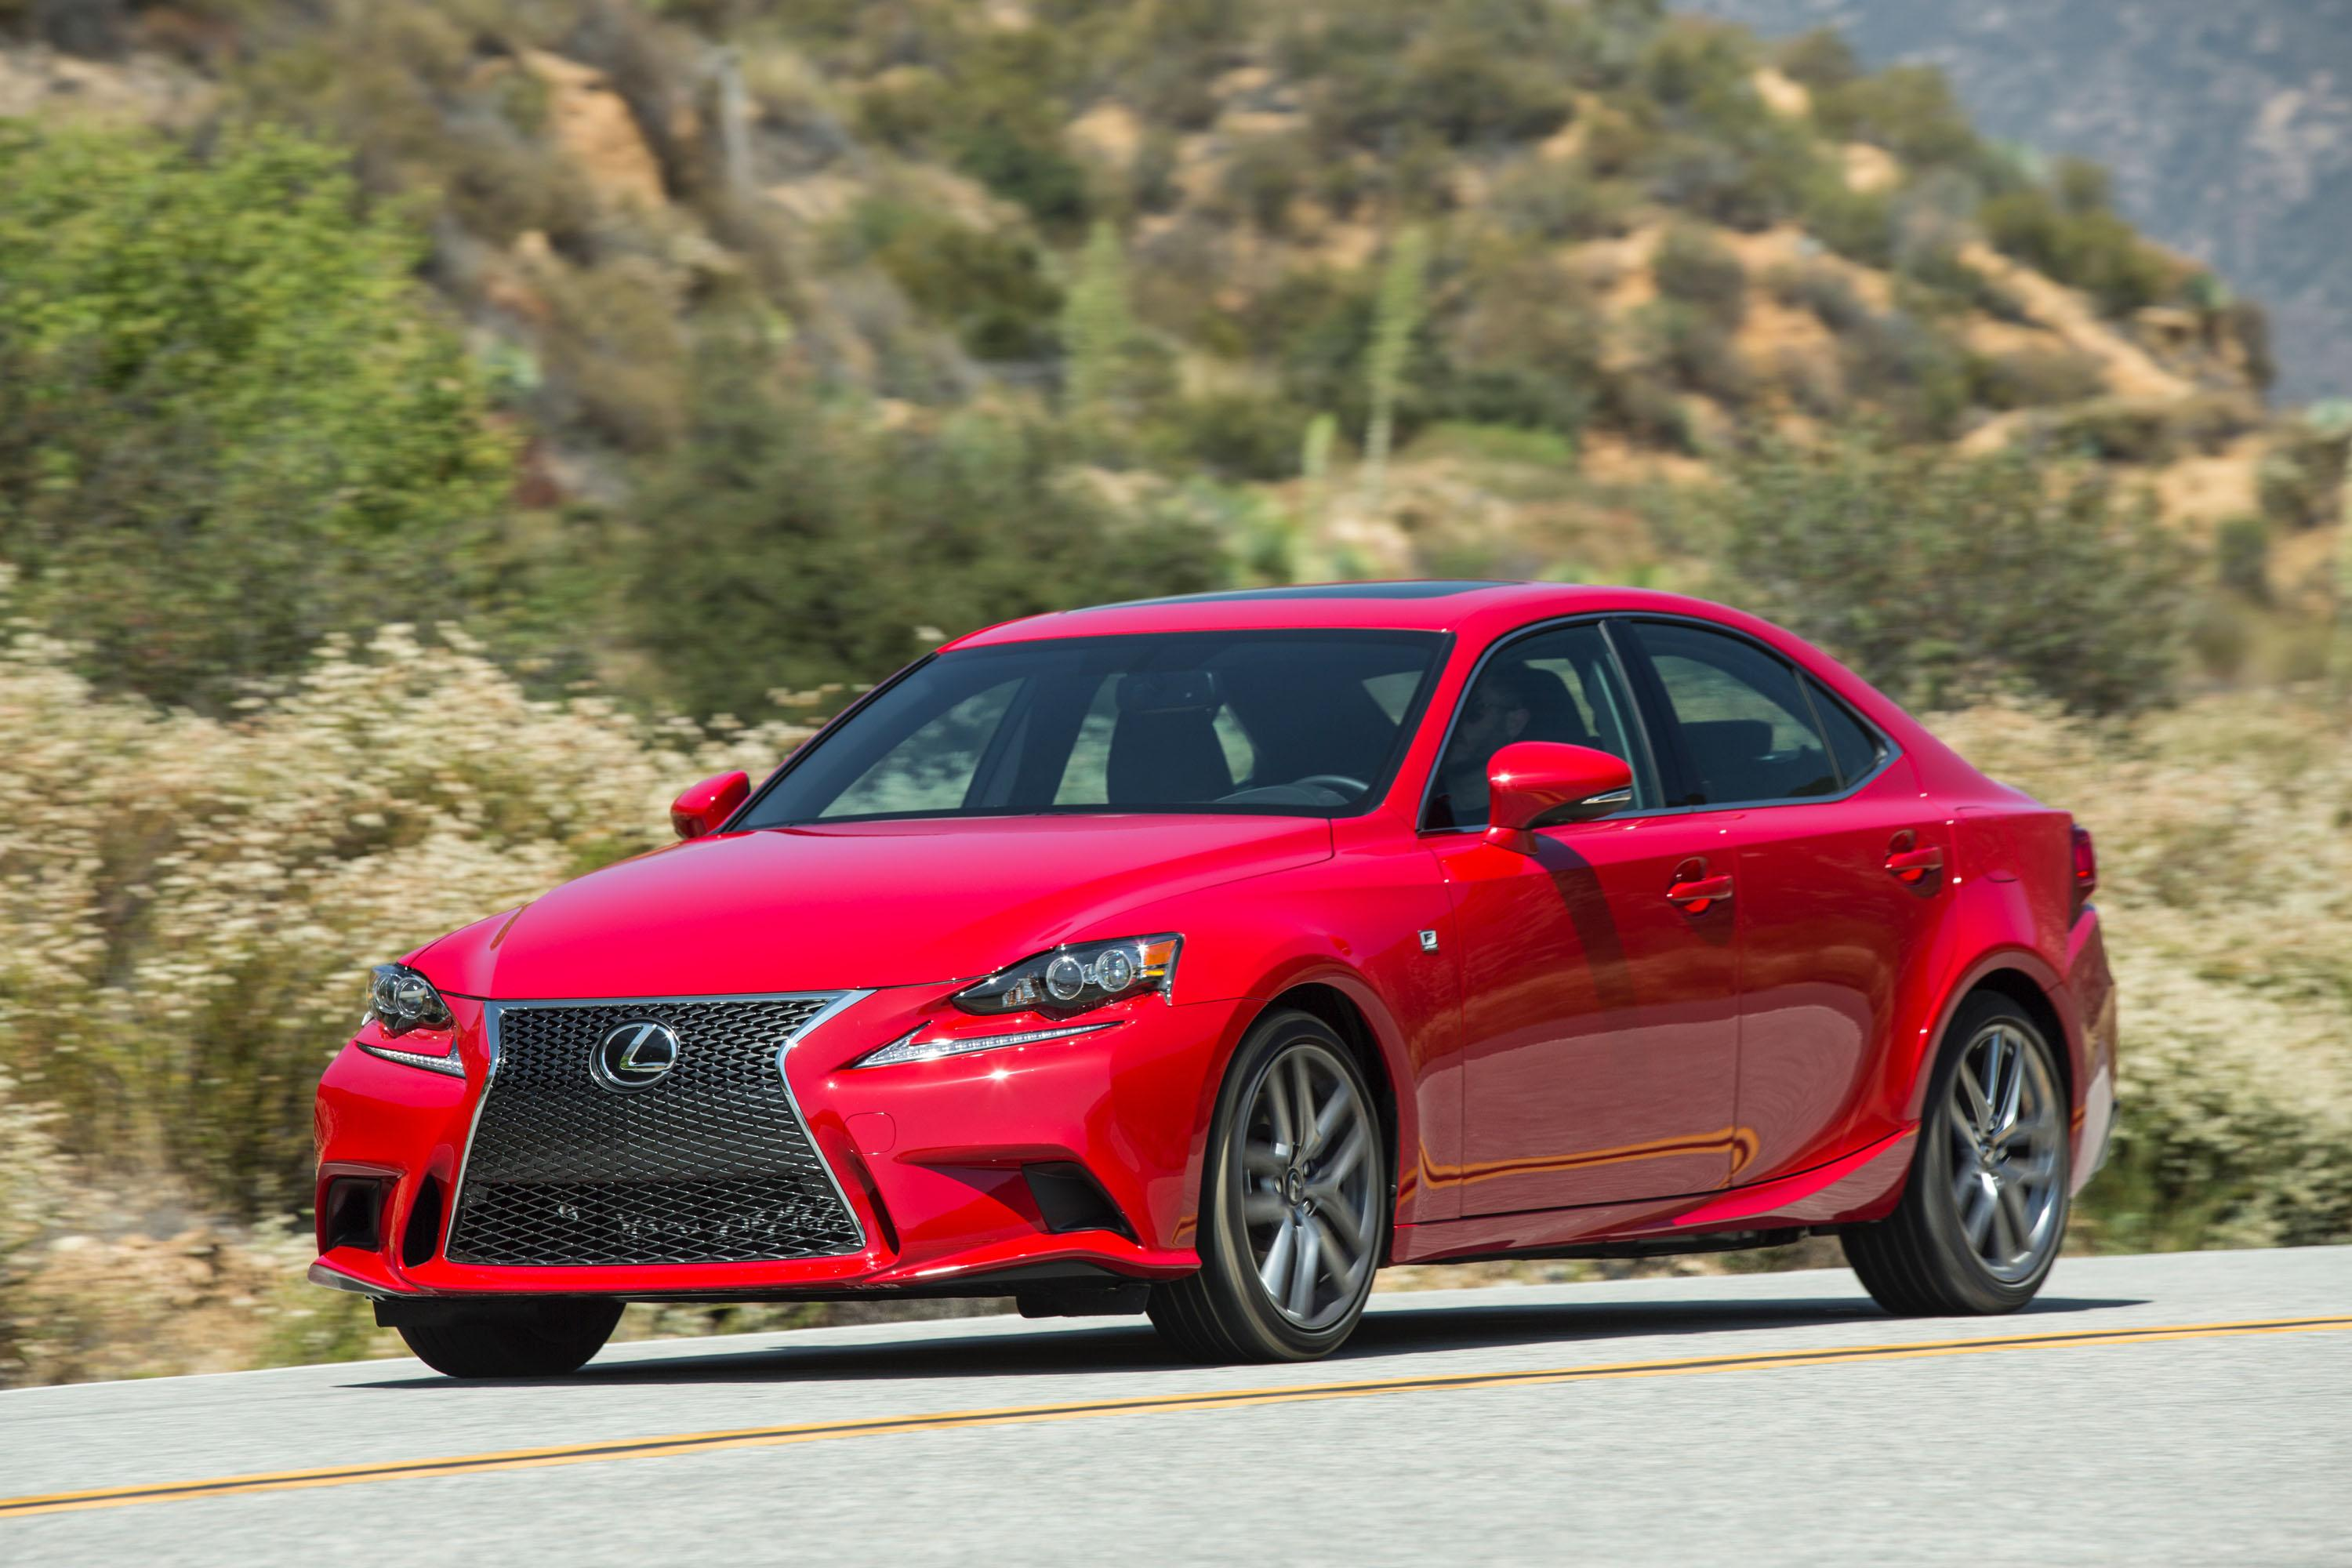 2016 lexus is 300 red 200 interior and exterior images. Black Bedroom Furniture Sets. Home Design Ideas